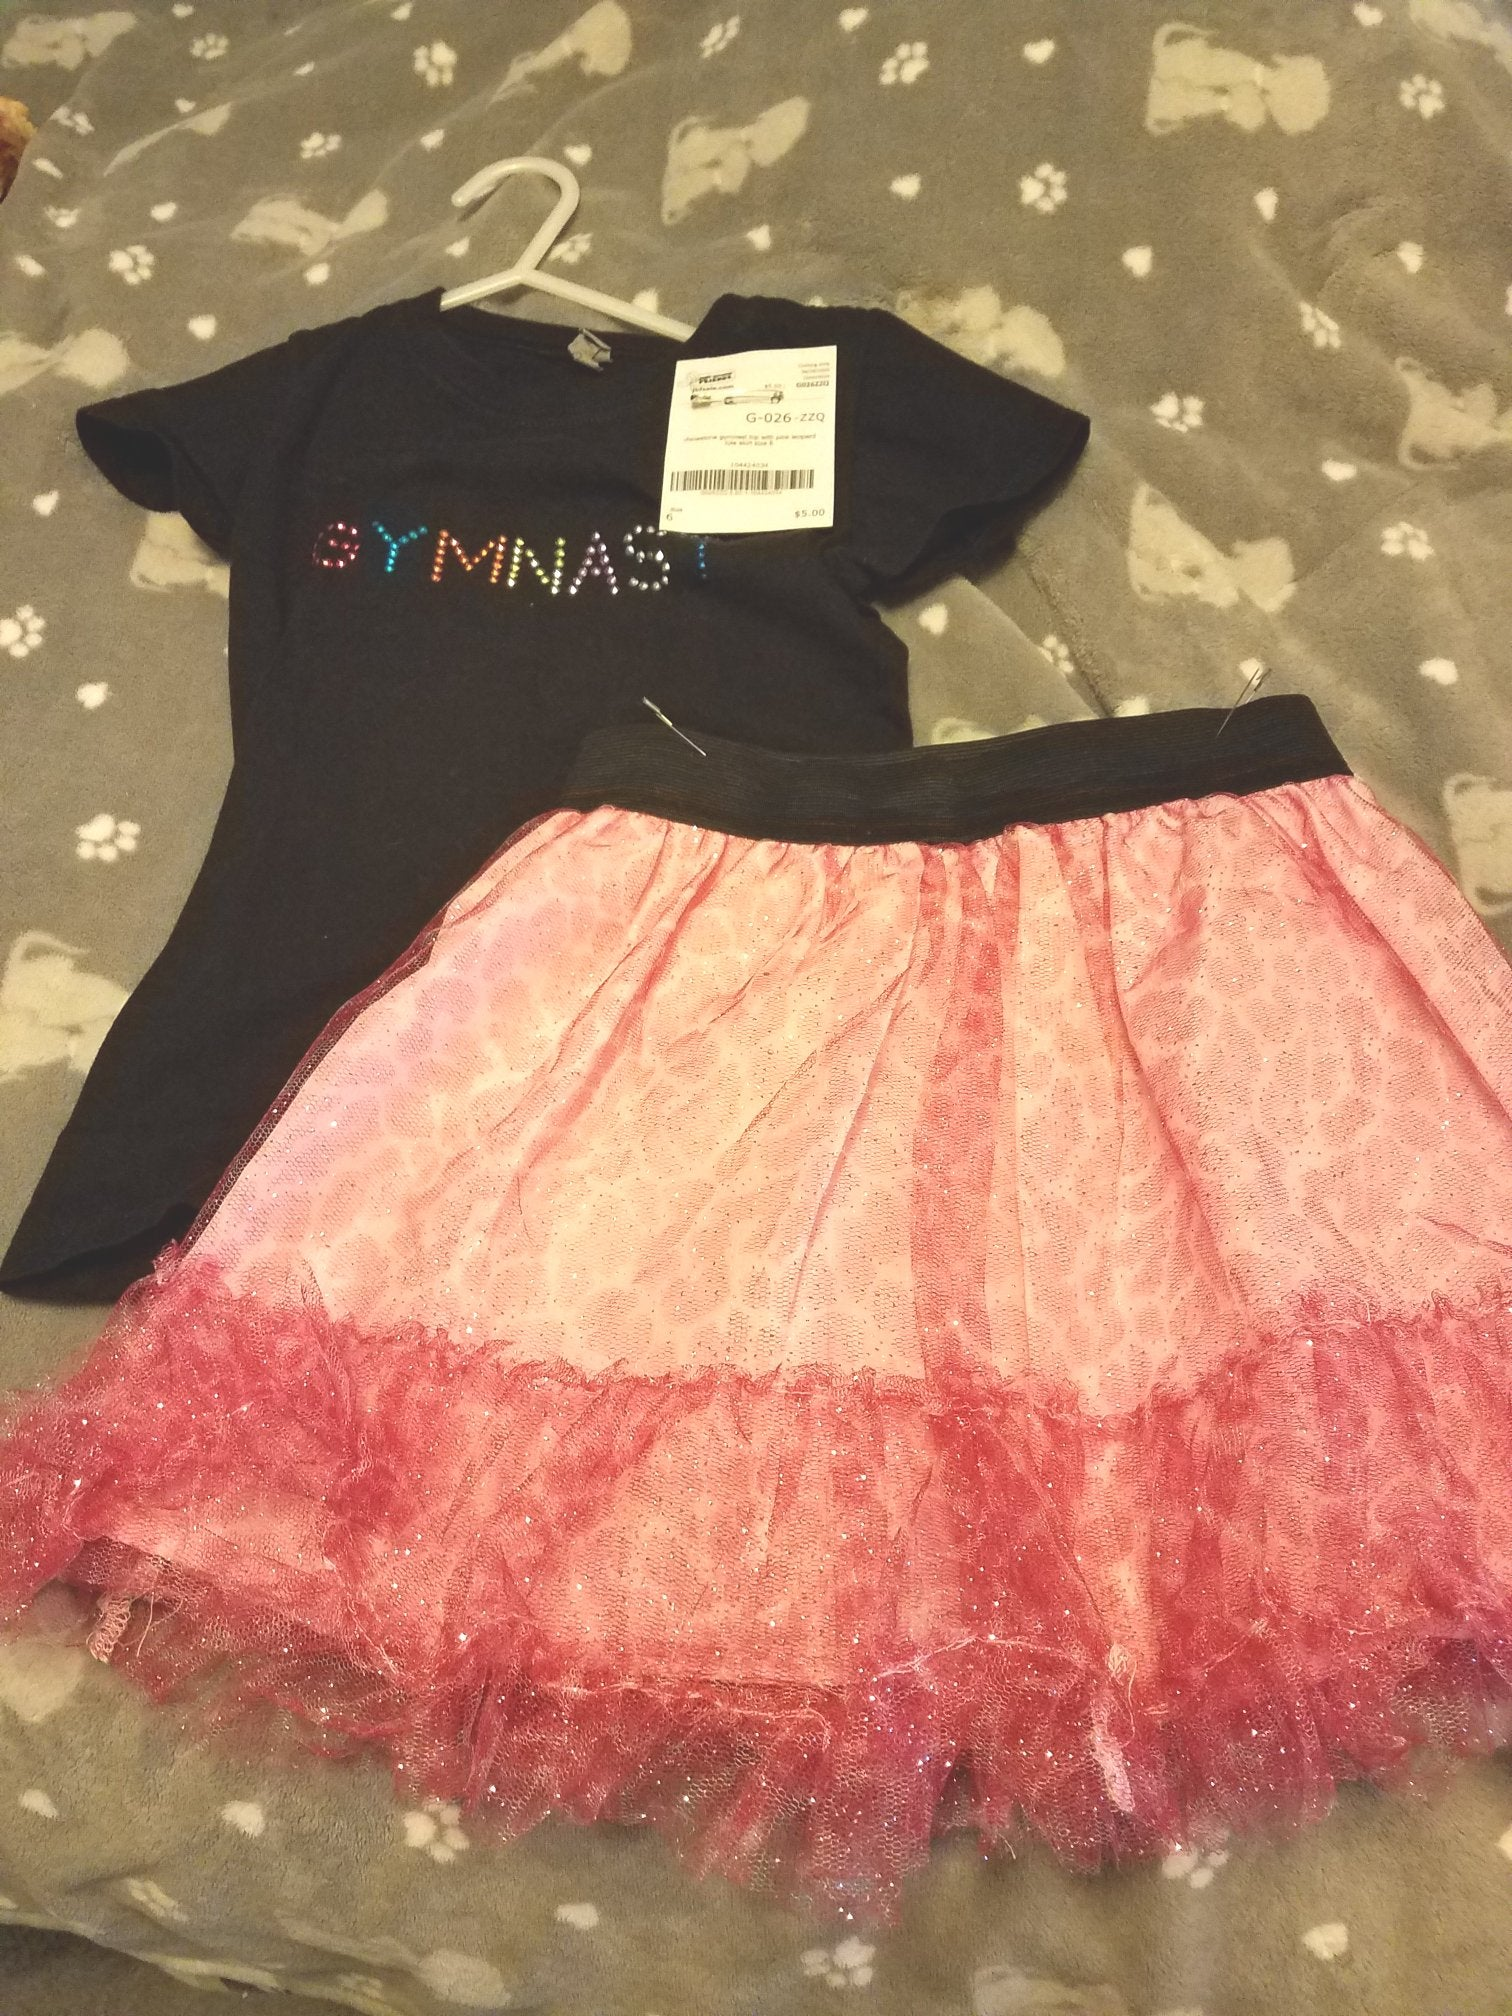 gymnast t with pink tulle skirt sz 6